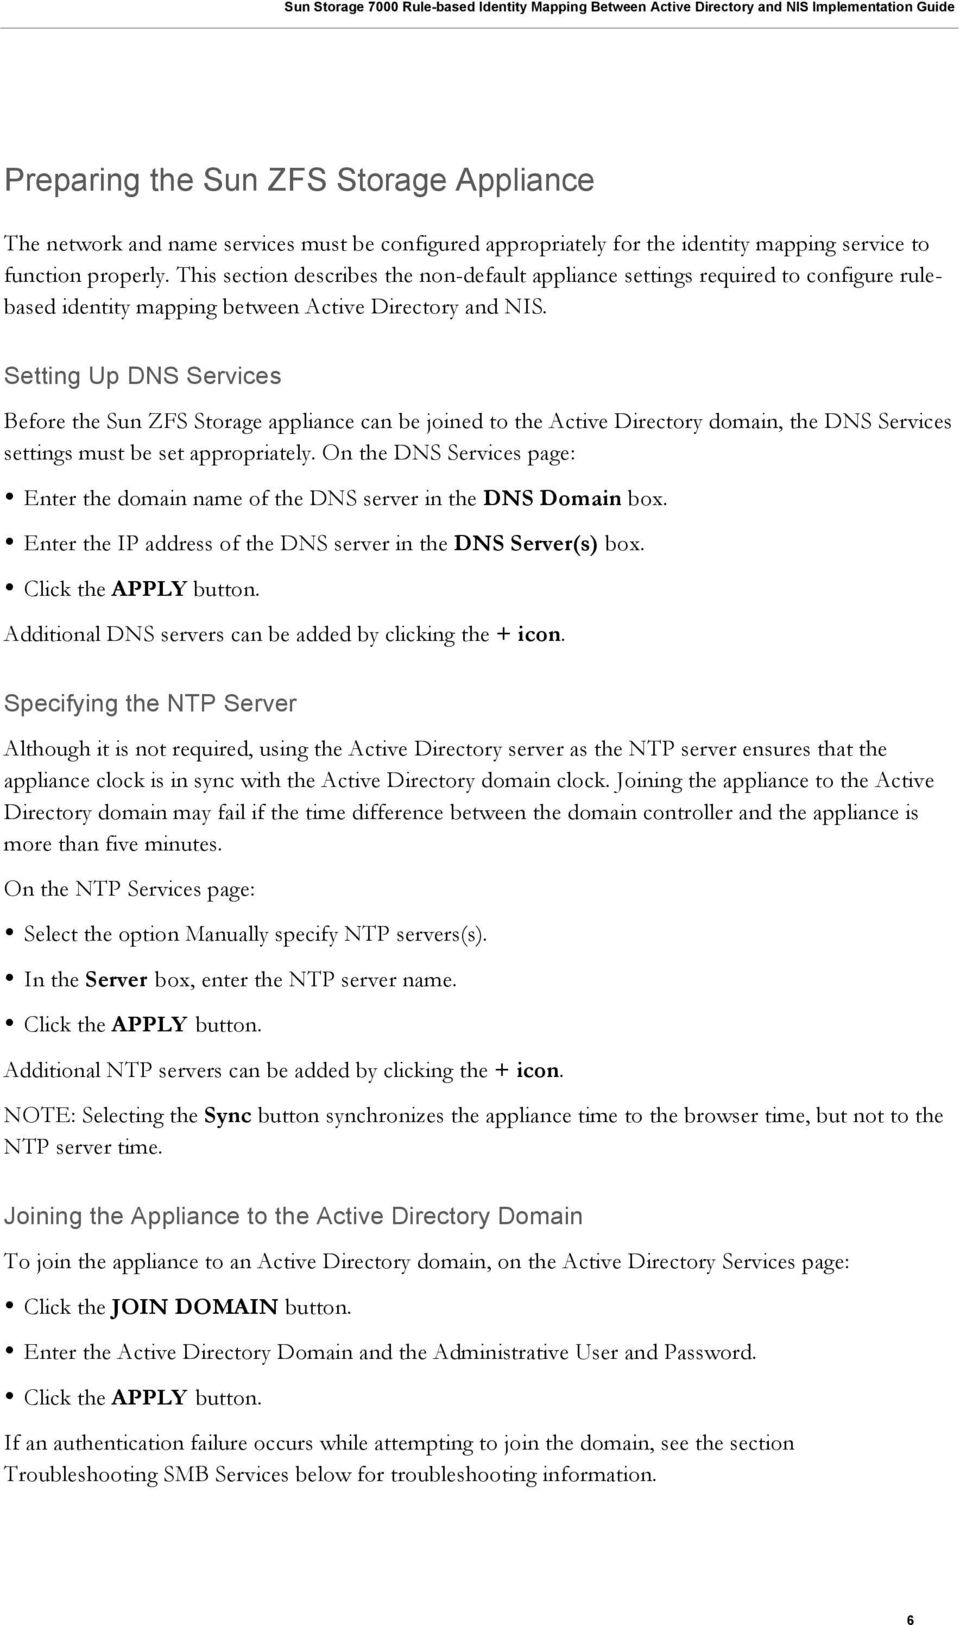 Setting Up DNS Services Before the Sun ZFS Storage appliance can be joined to the Active Directory domain, the DNS Services settings must be set appropriately.